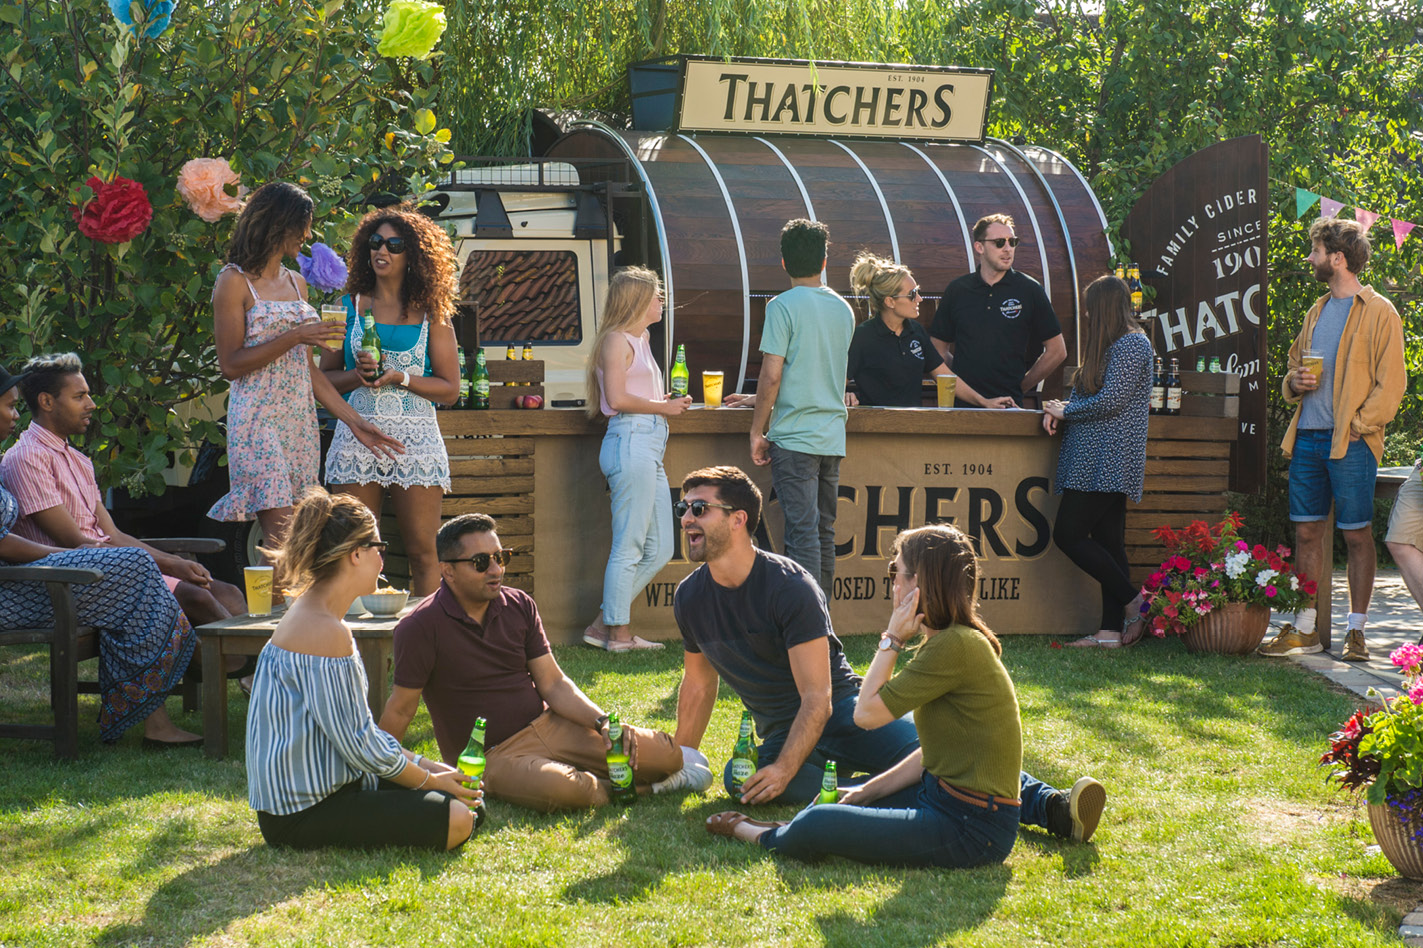 Thatchers Cider Experience image